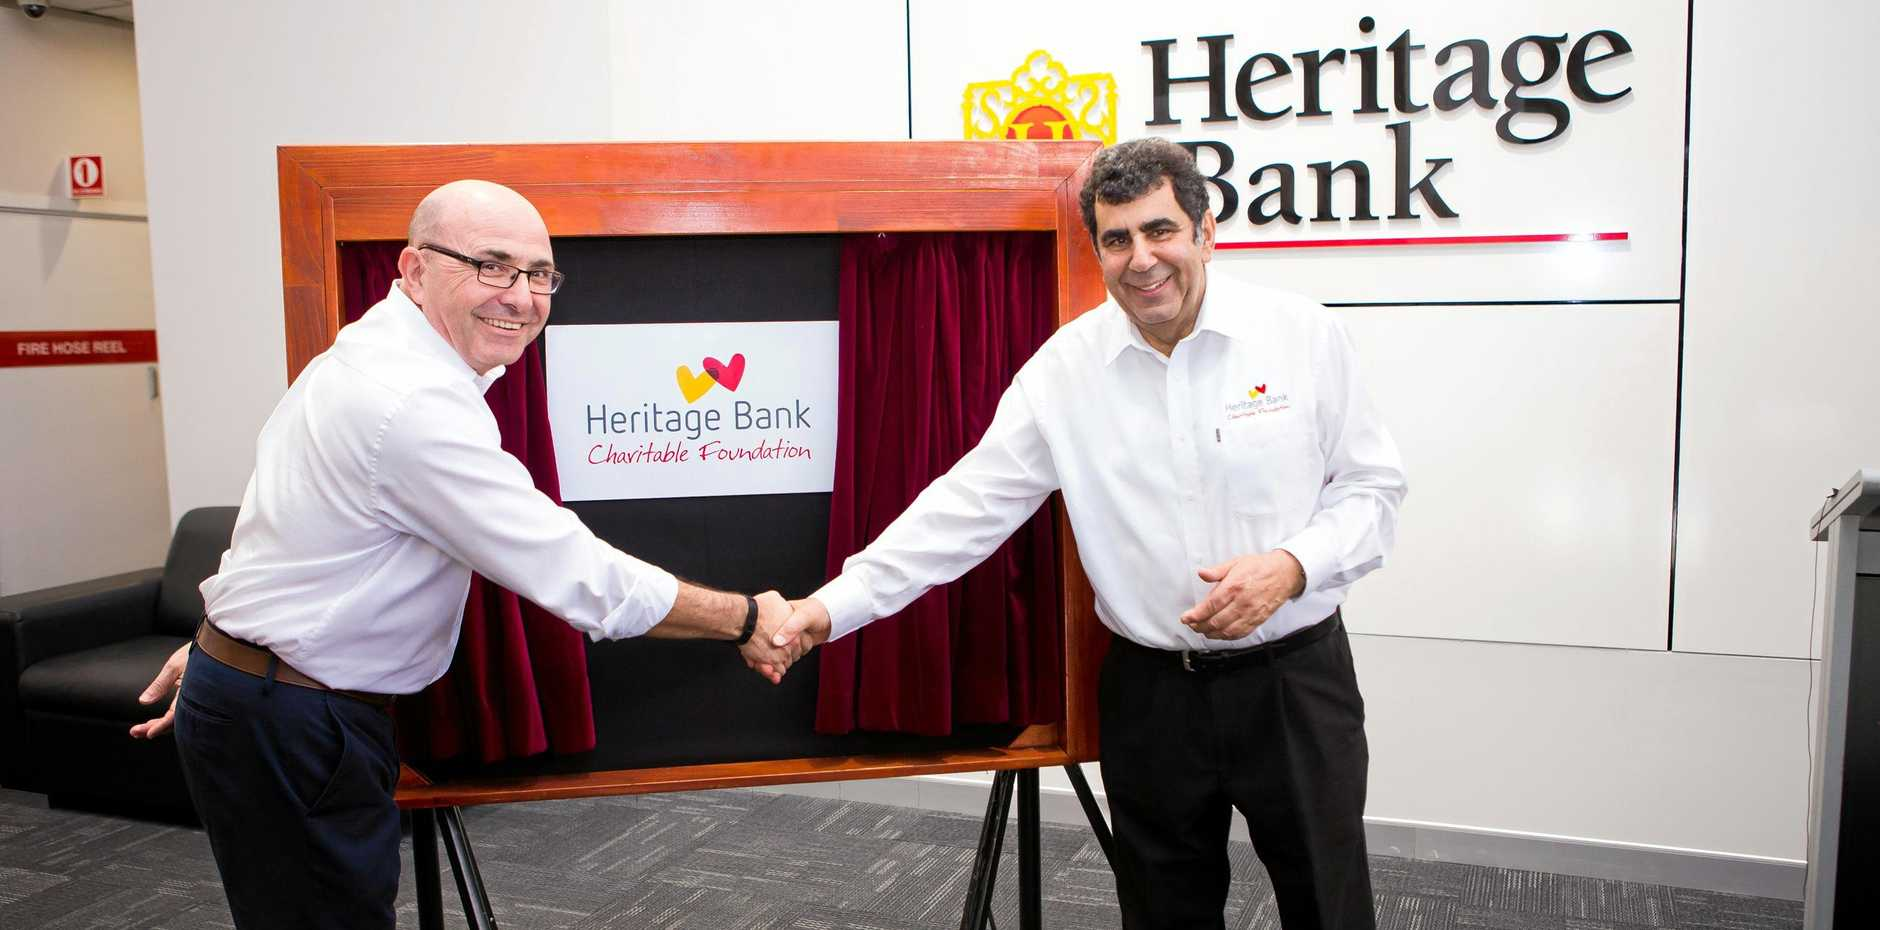 AWARD: Heritage CEO Peter Lock (left) says the bank is thrilled to be named Bank of the Year. Pictured here with chairman Kerry Betros at the launch of the new Heritage Bank Charitable Foundation.